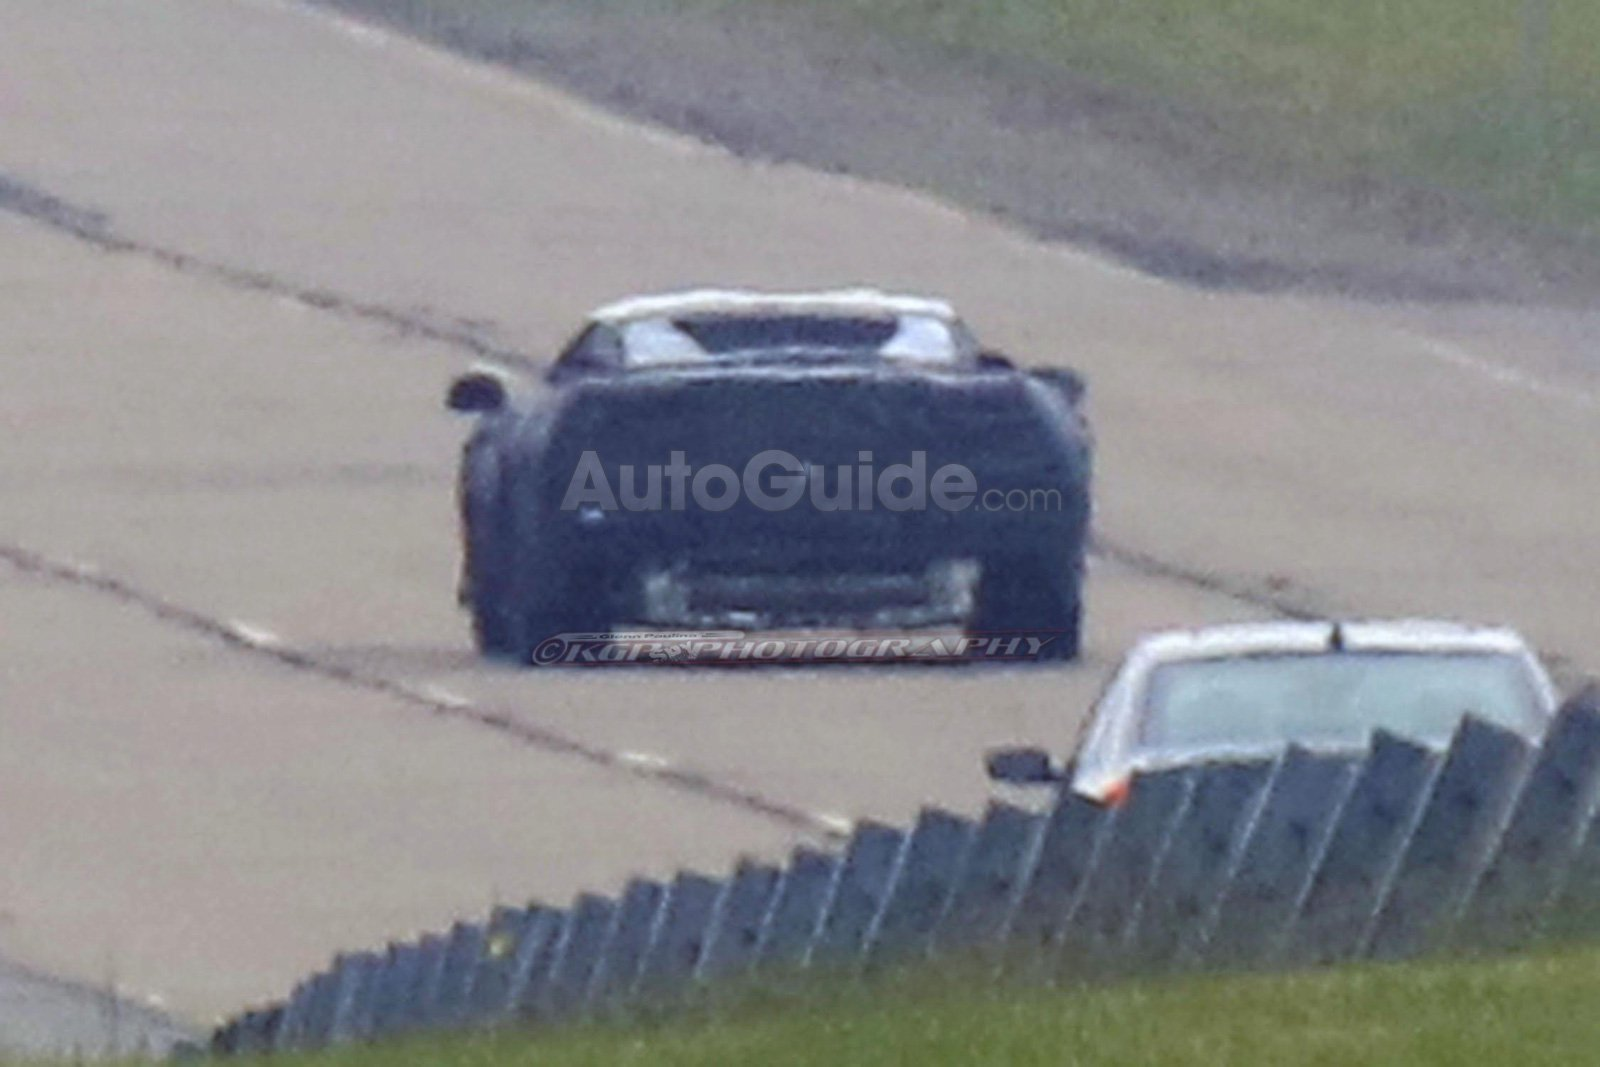 Mid-Engine 2019 Corvette Spied Testing in the Daylight